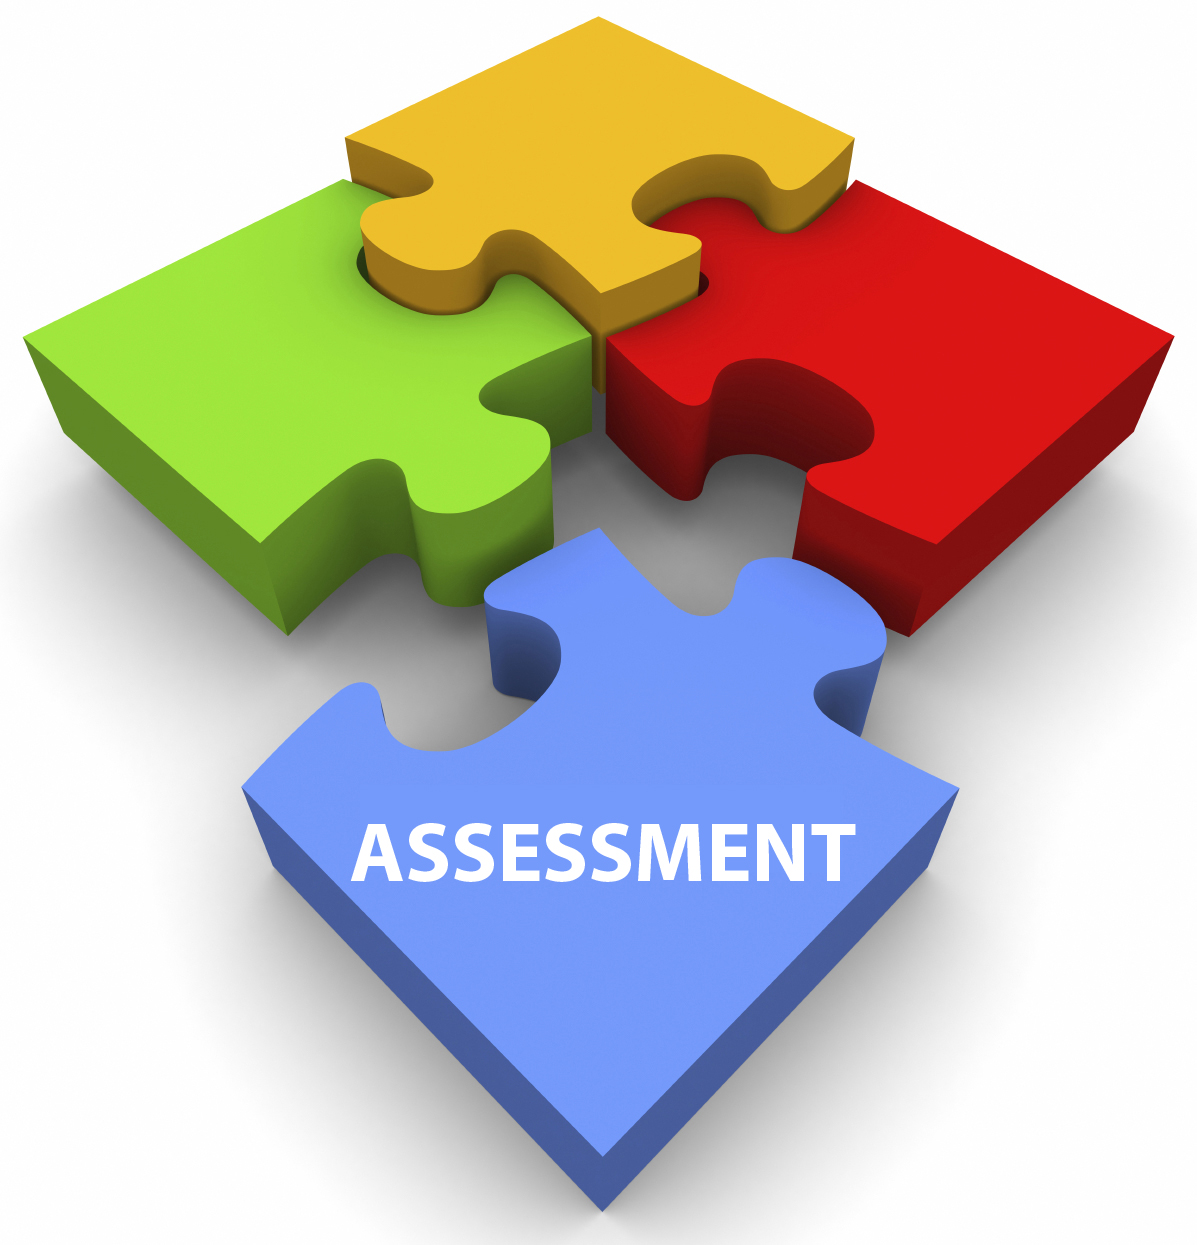 Assessment clipart assessment evaluation. Free assessments cliparts download